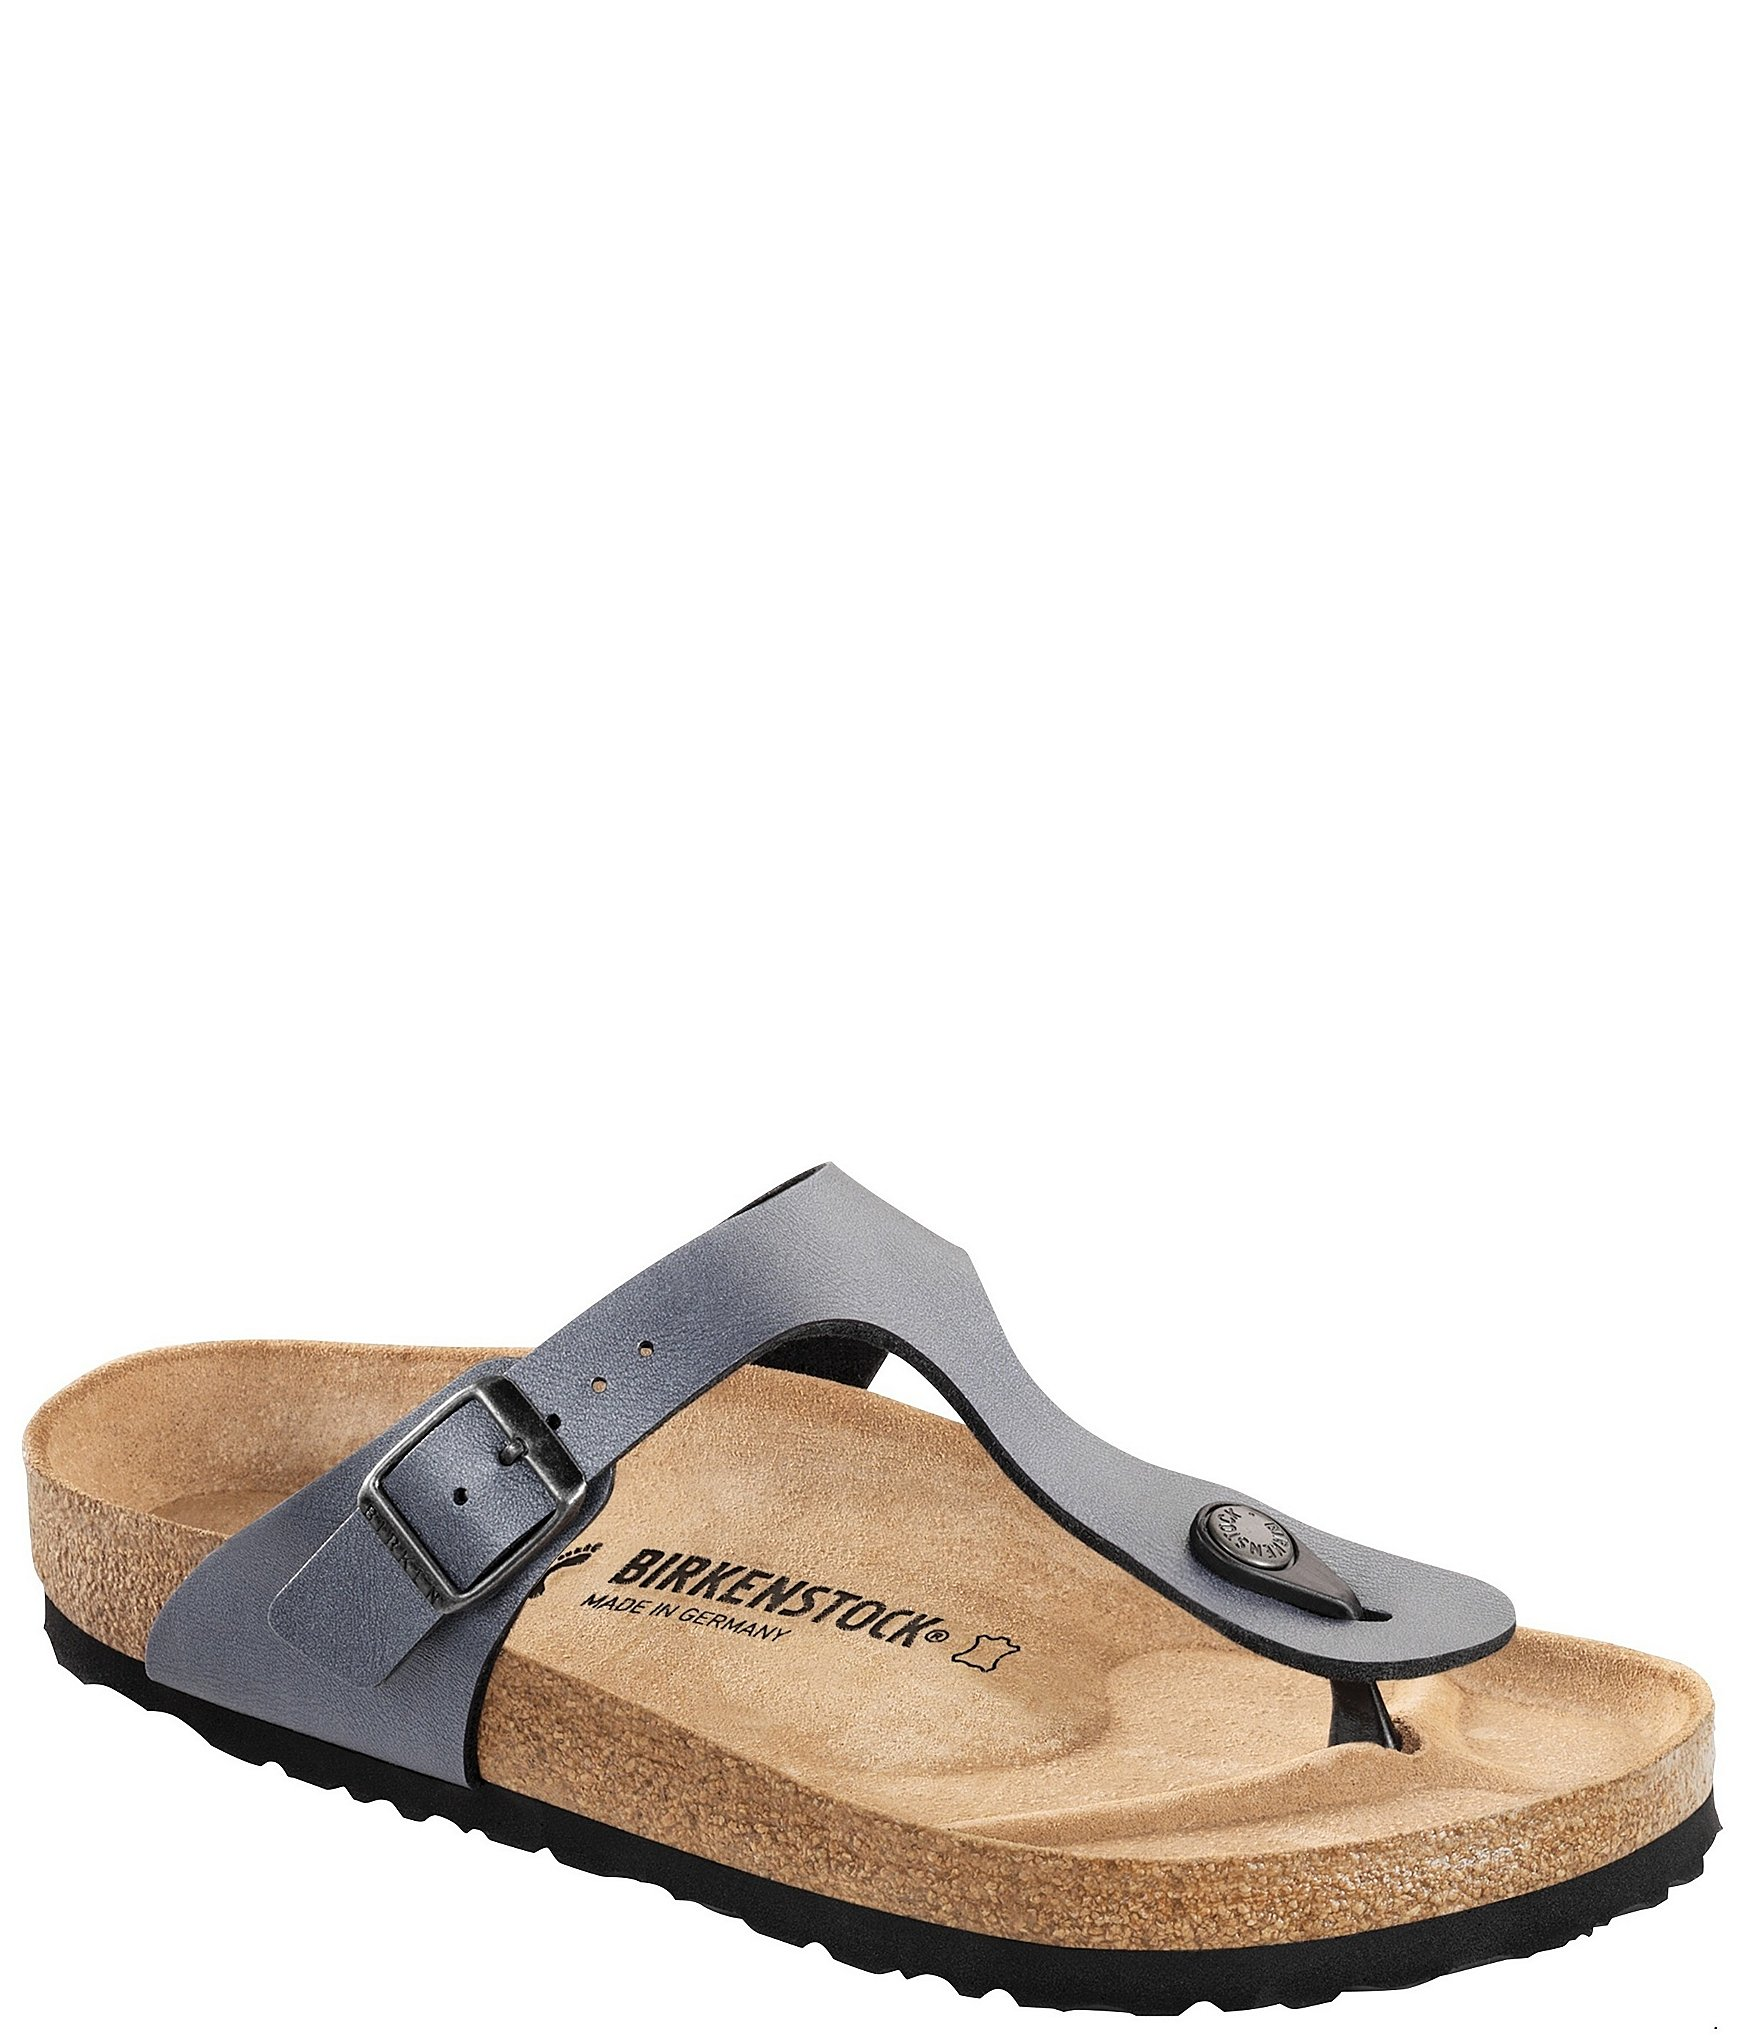 a60cf6dfbcd Birkenstock Gizeh Adjustable Strap Thong Sandals